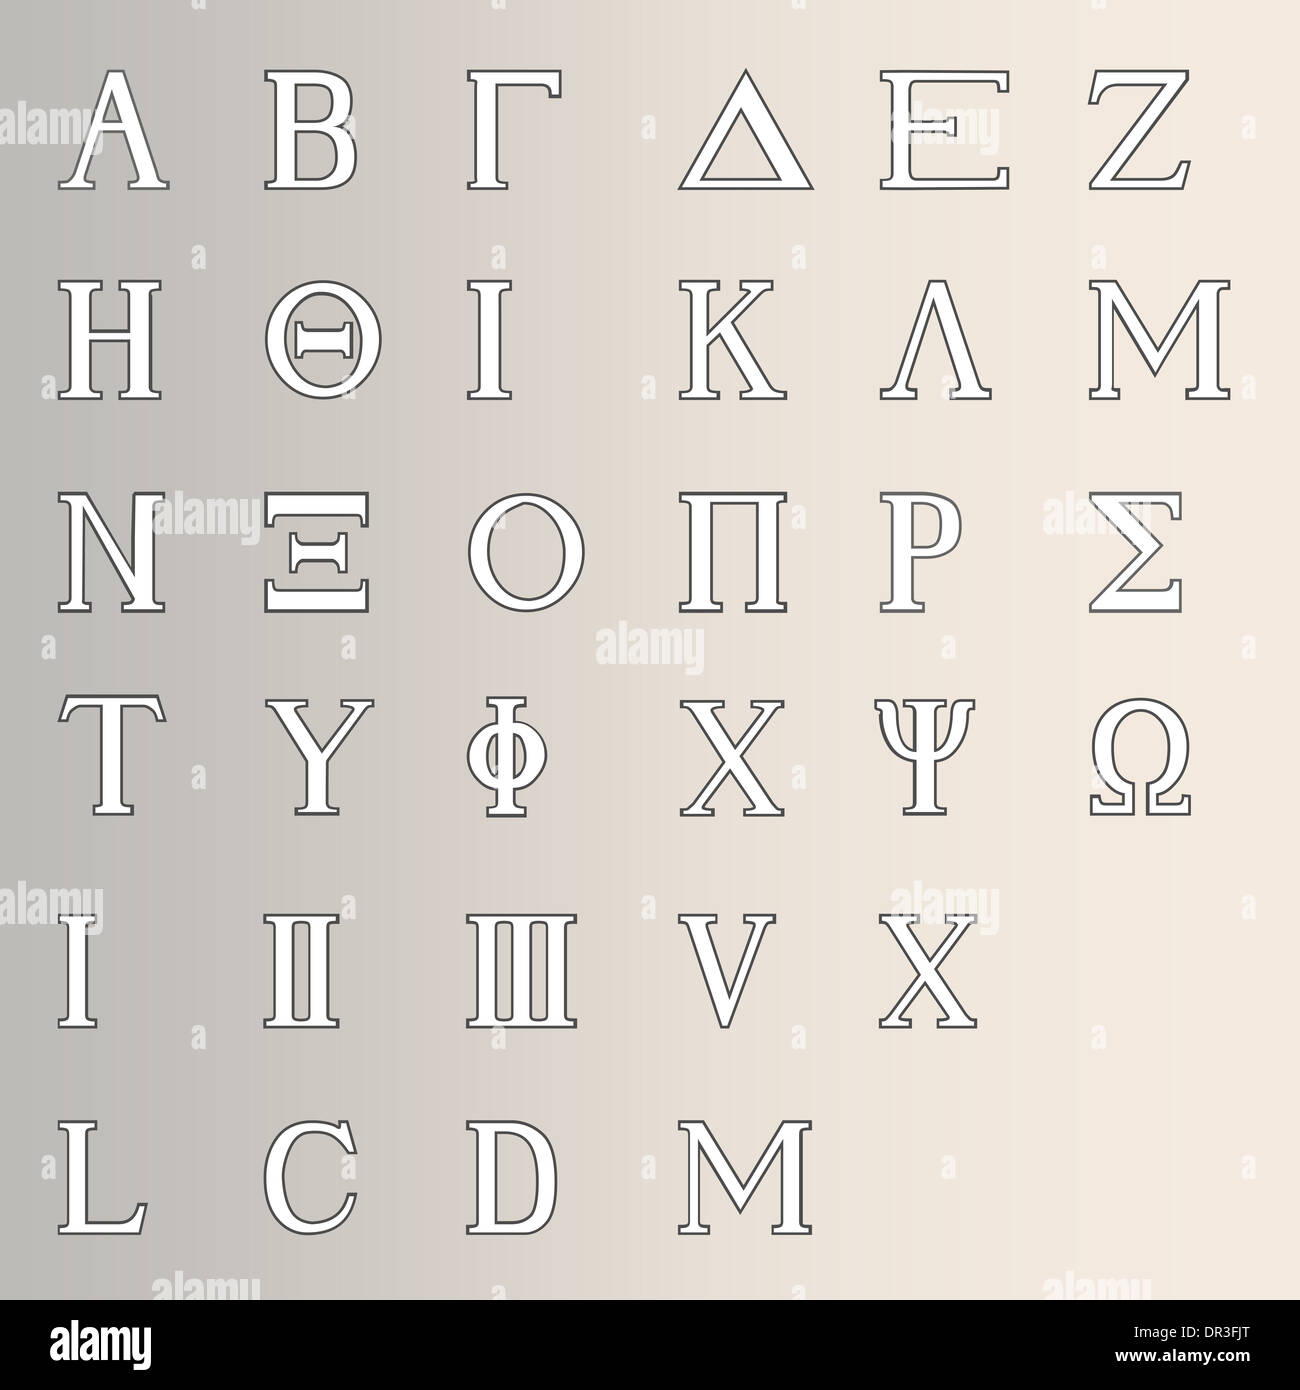 The letters of the Greek alphabet with numbers - Stock Image